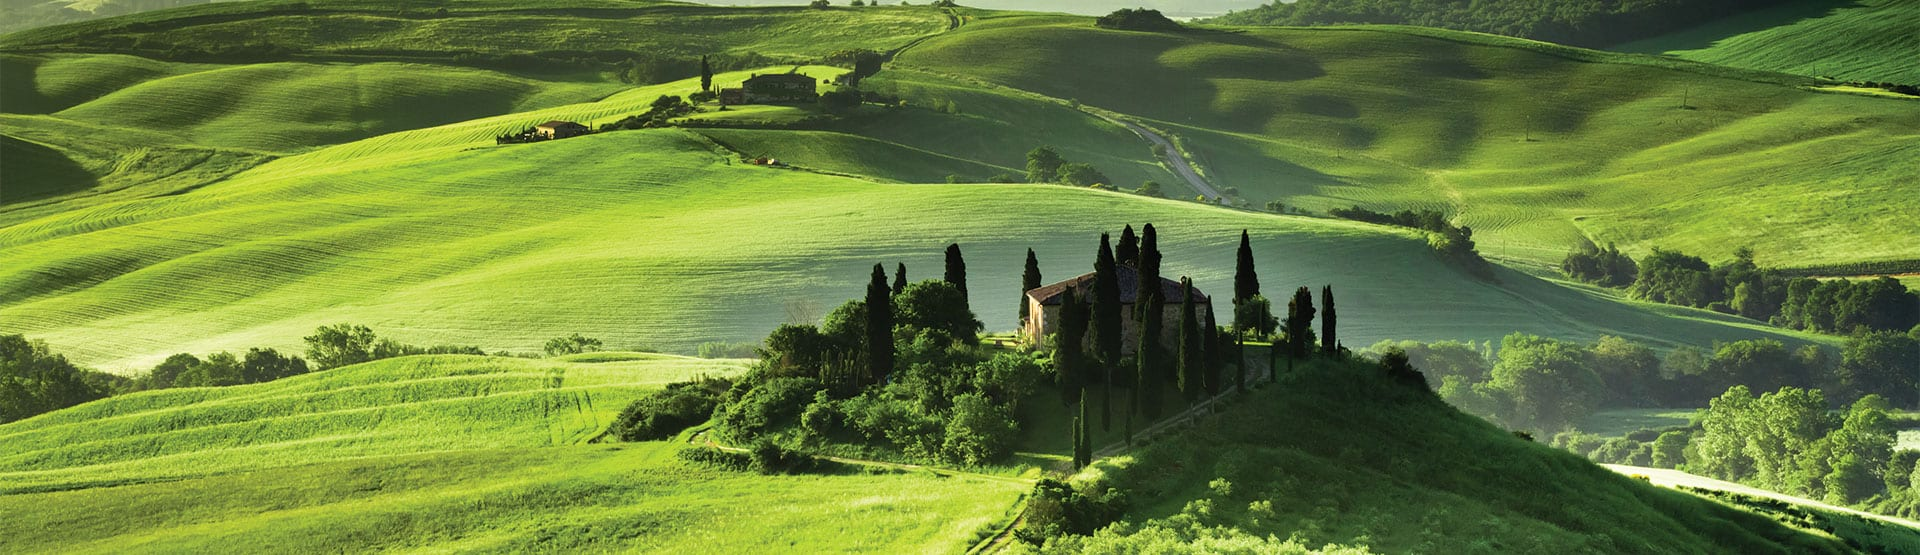 Accommodation - Walking in Tuscany